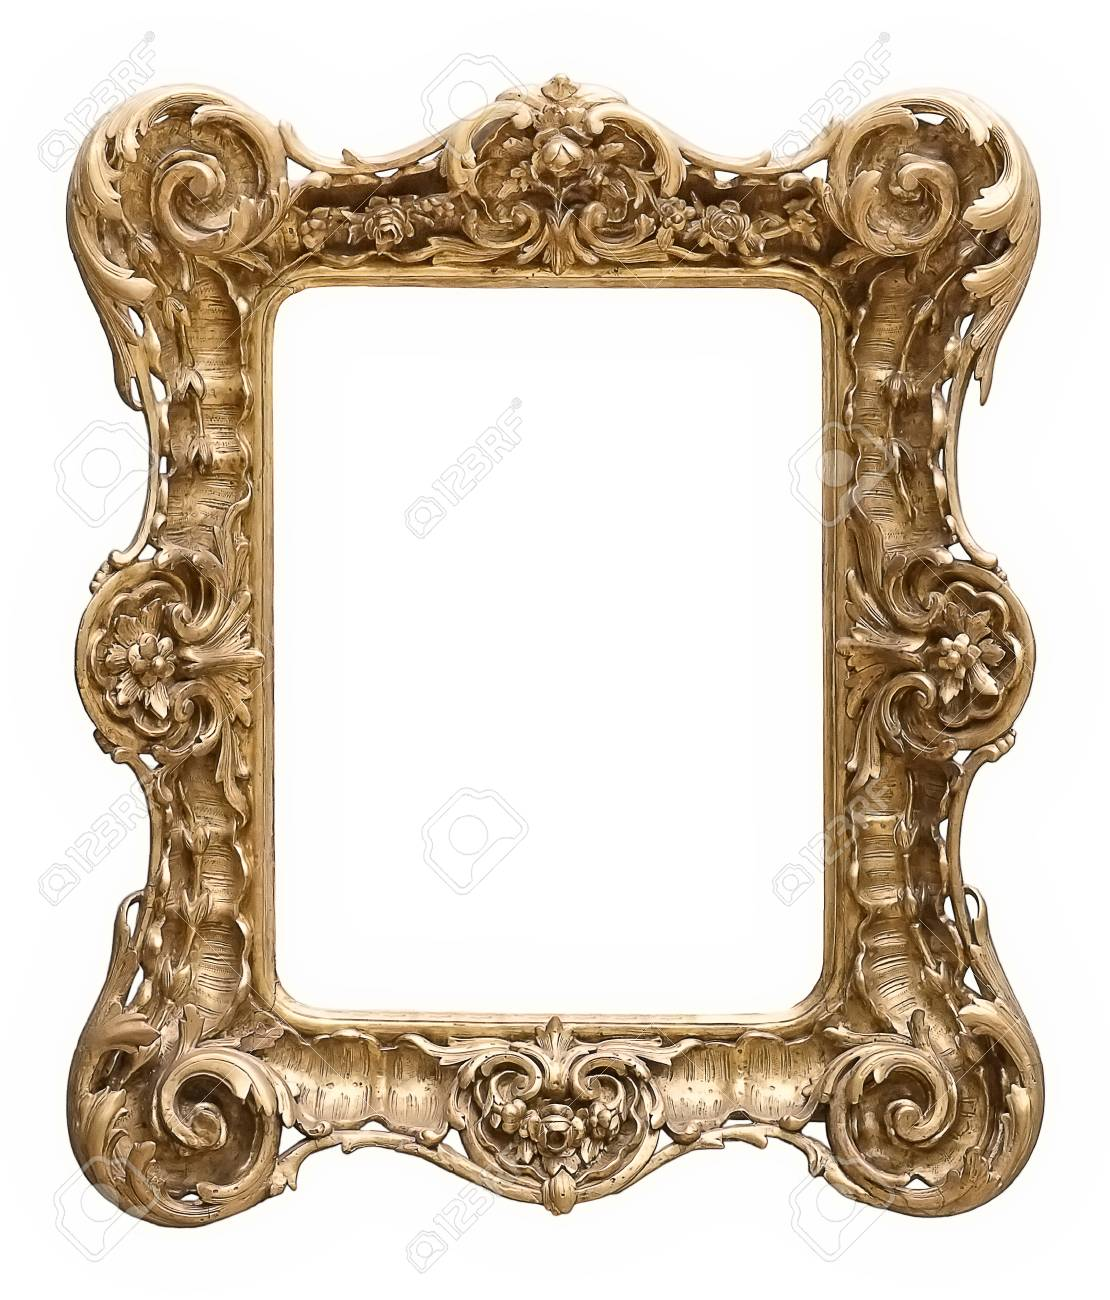 Gold Frame For Paintings, Mirrors Or Photos Stock Photo, Picture And ...